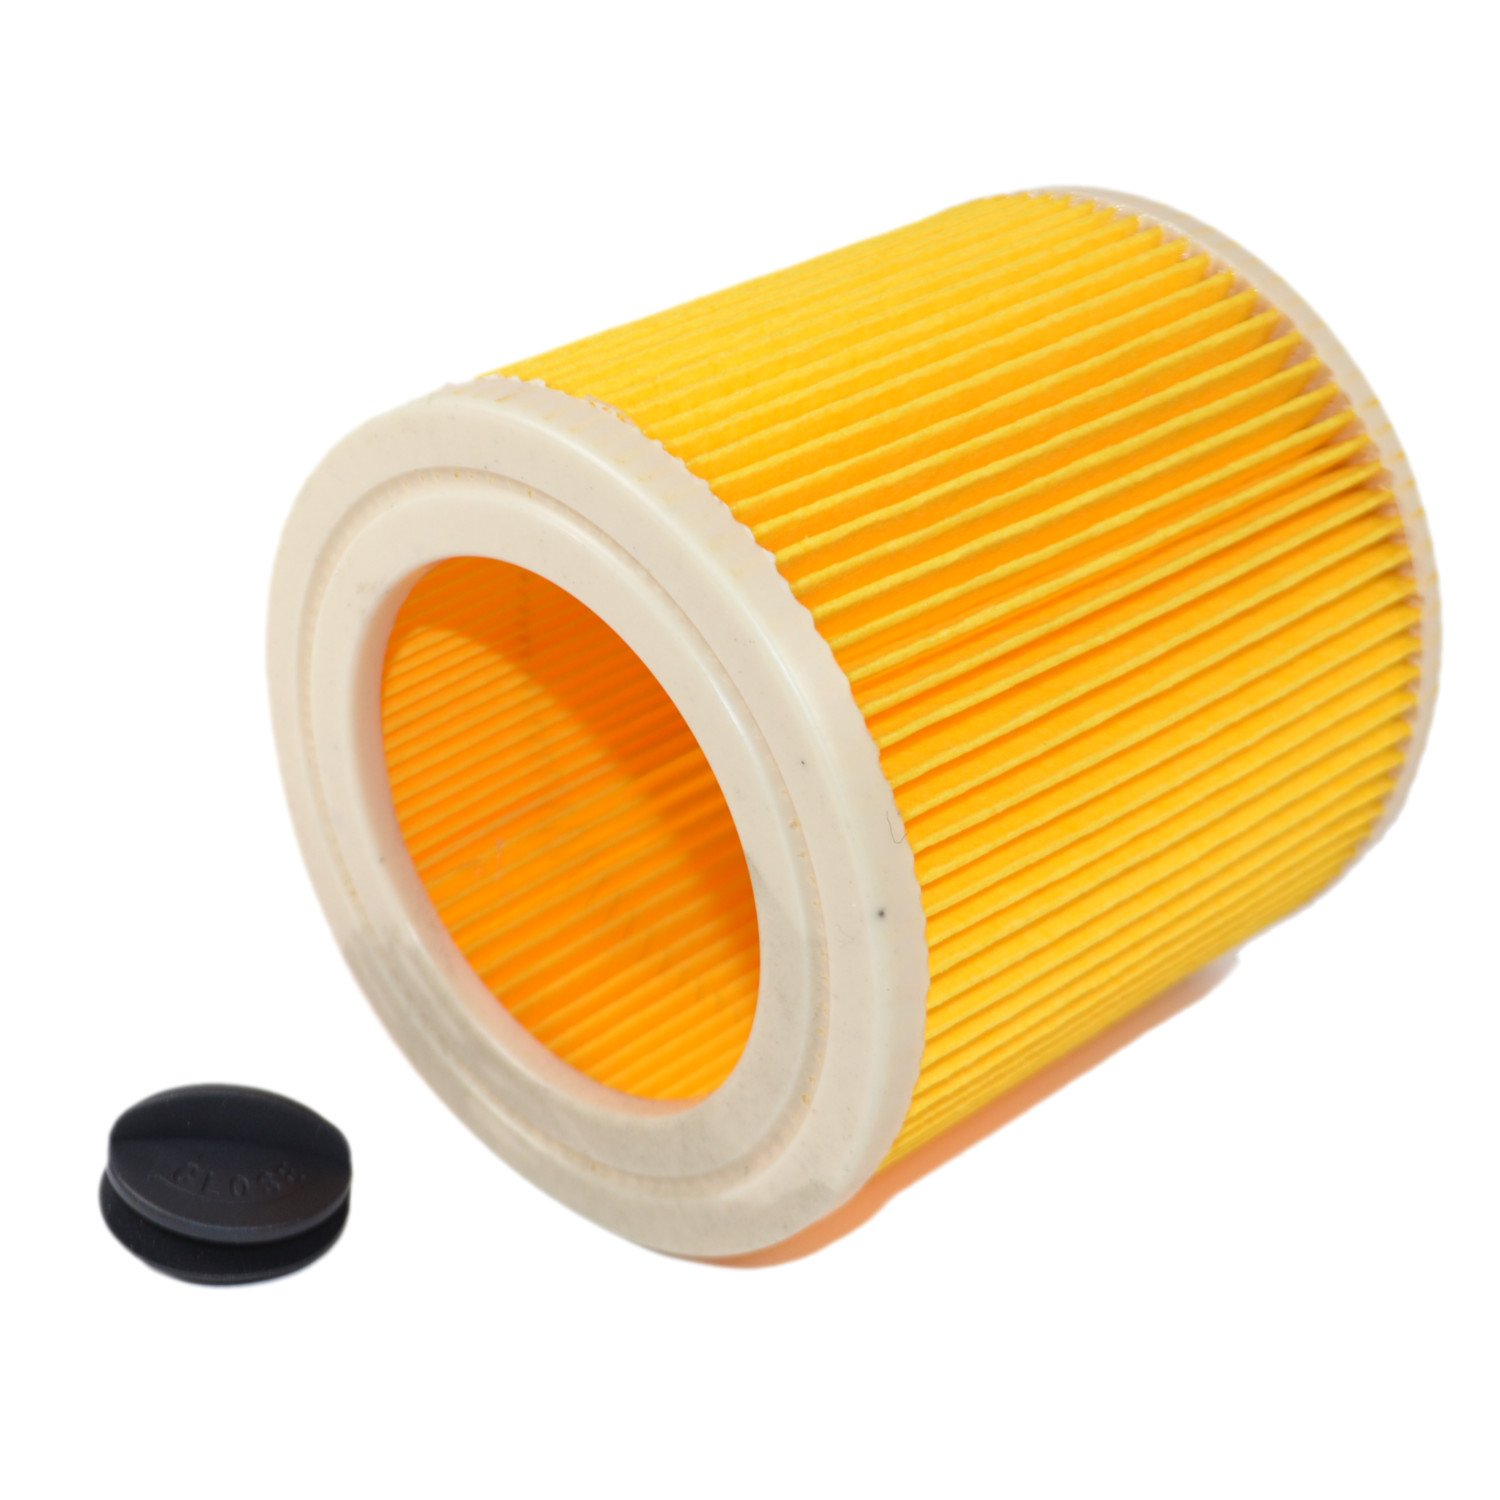 HQRP 2-pack Cartridge Filter for Karcher MV2, MV3 series, MV2 Premium, MV 3 Car Kit, MV 3 P, MV 3 Premium, MV 3 Fireplace Kit, MV3 P Extension Kit Wet & Dry Vacuum Cleaner + HQRP Coaster - image 2 de 4